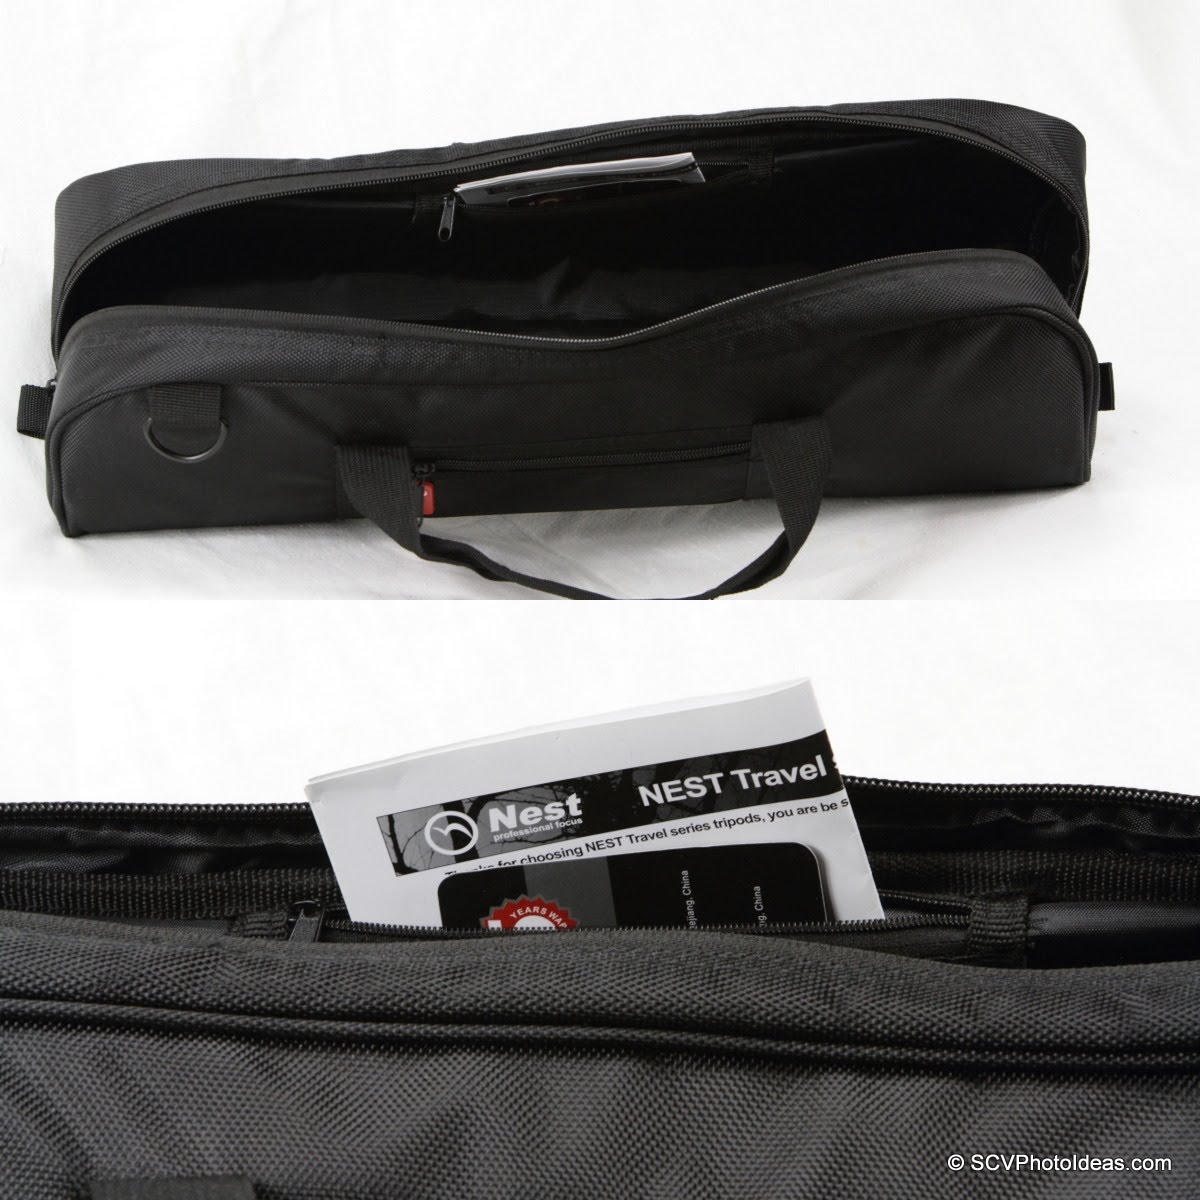 Nest NT-6294CT carrying case internal pocket detail